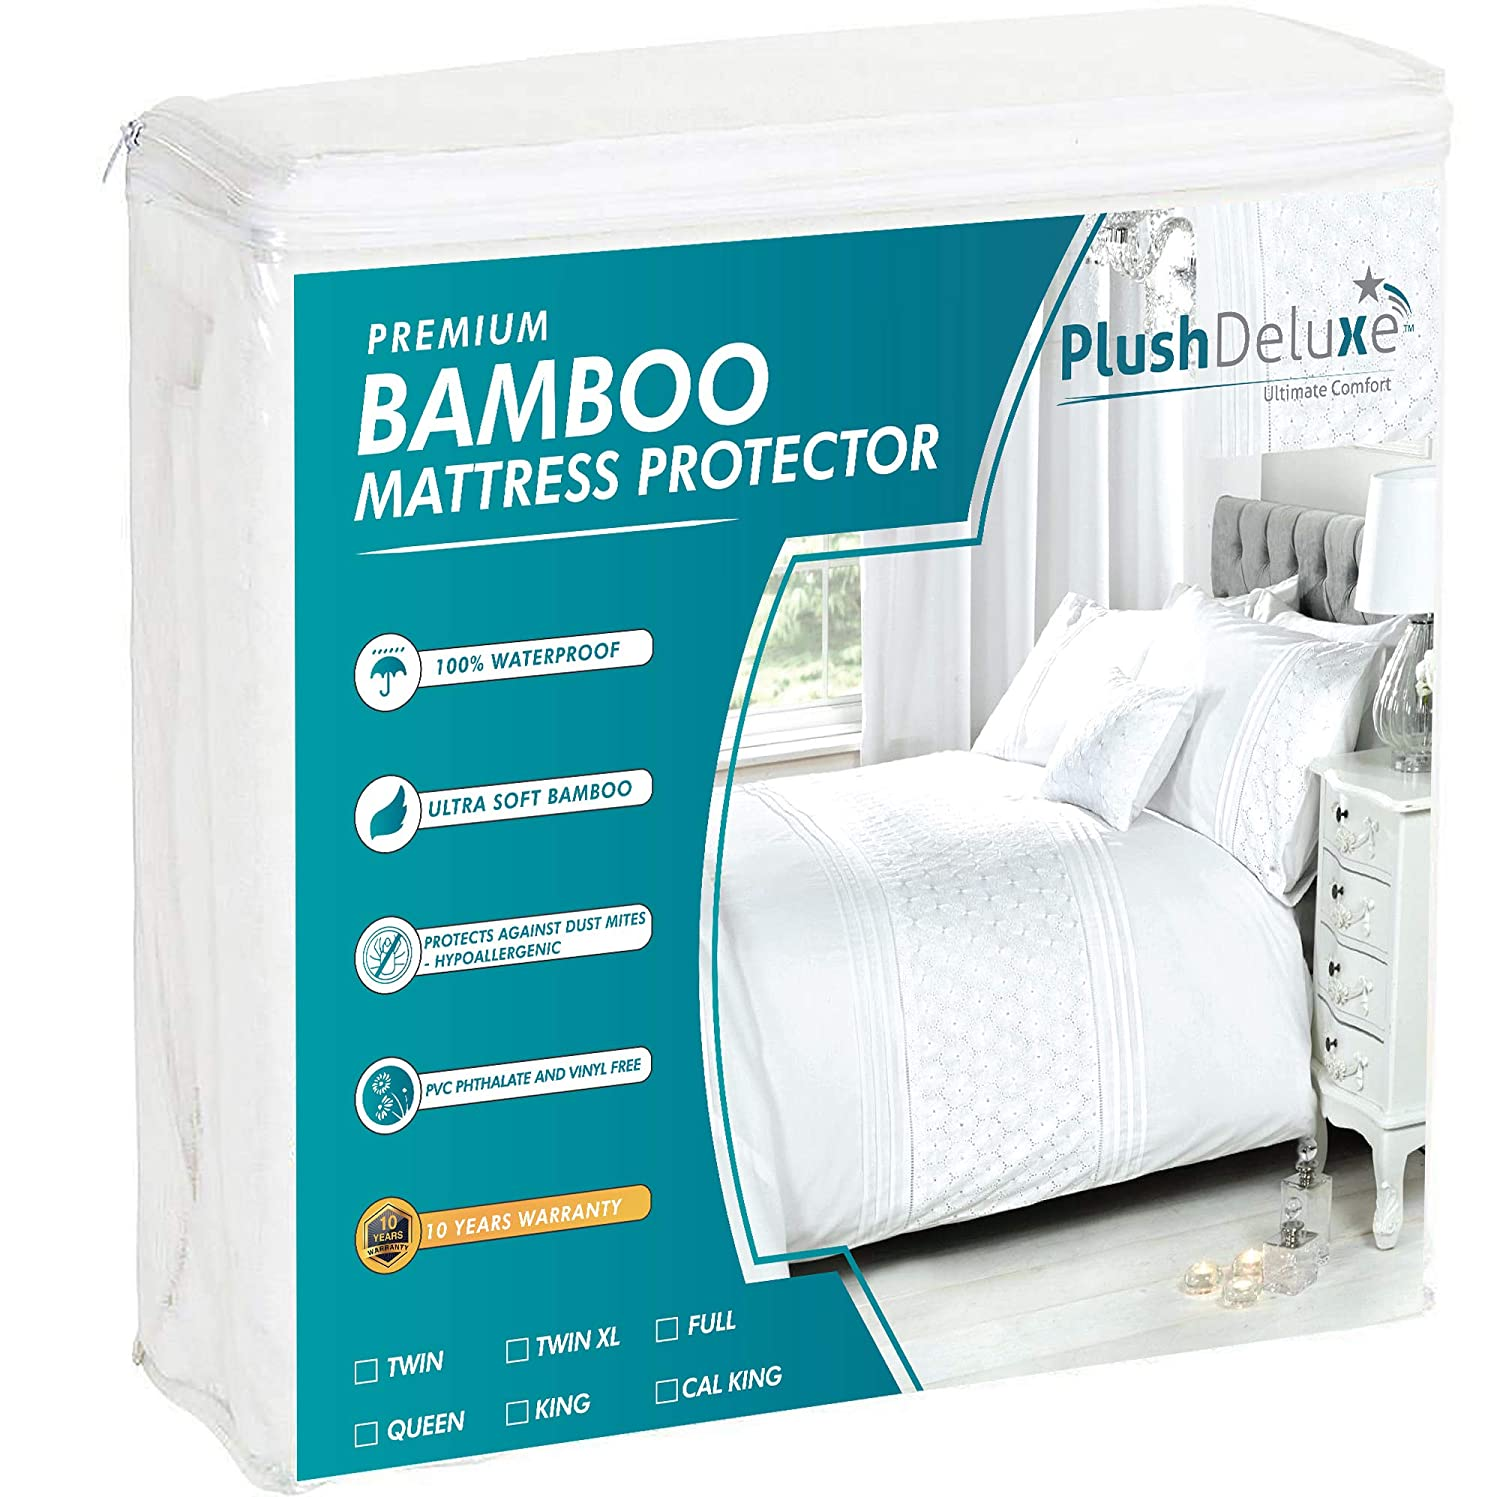 PlushDeluxe Premium Bamboo Mattress Protector – Waterproof, Hypoallergenic &Ultra Soft Breathable Bed Mattress Cover for Maximum Comfort & Protection - PVC, Phthalate & Vinyl-Free (California King)